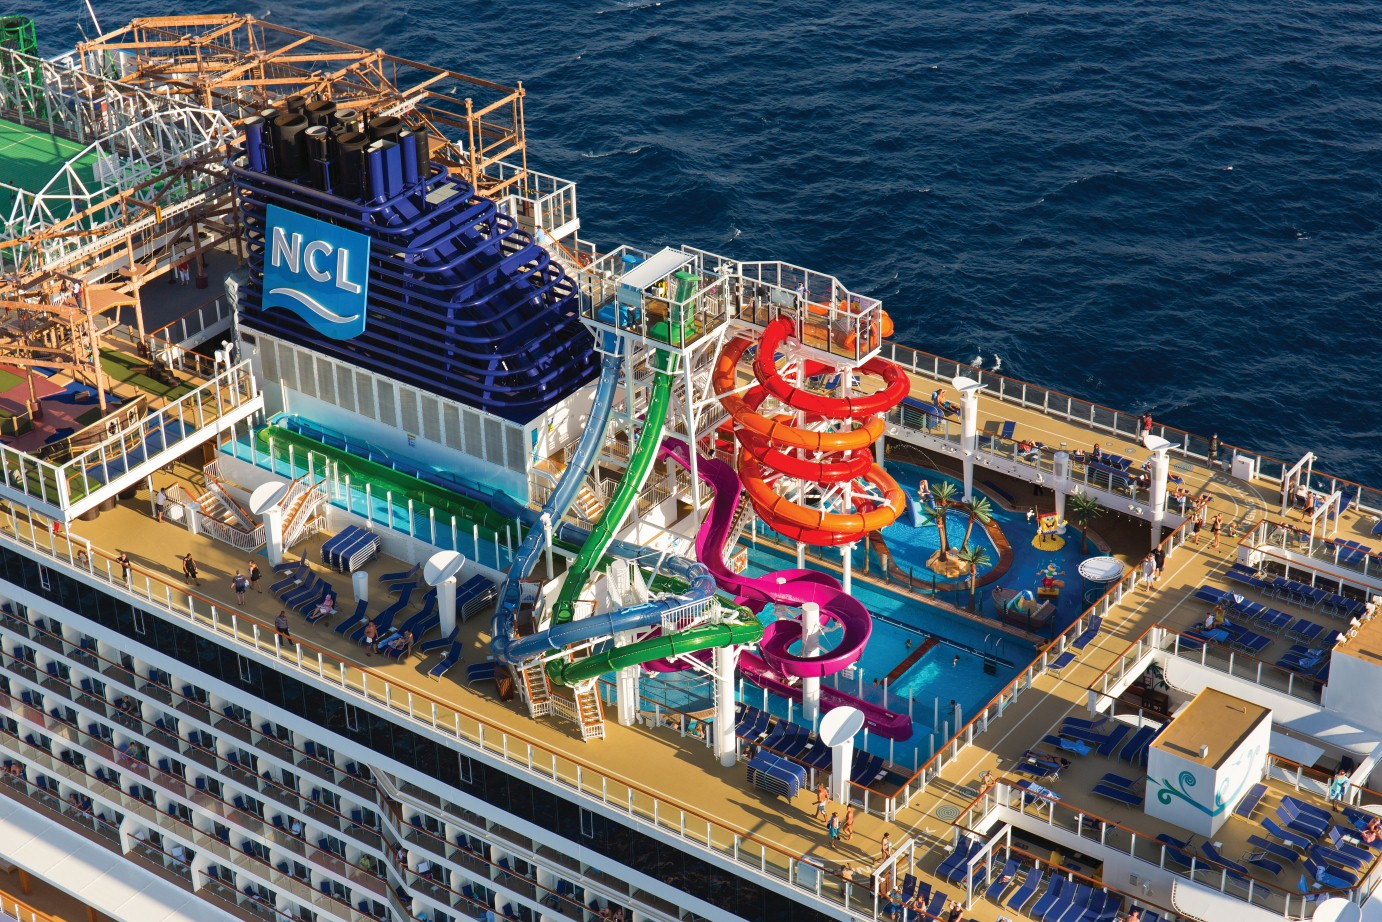 Norwegian Getaway cruise ship aerial view of top deck